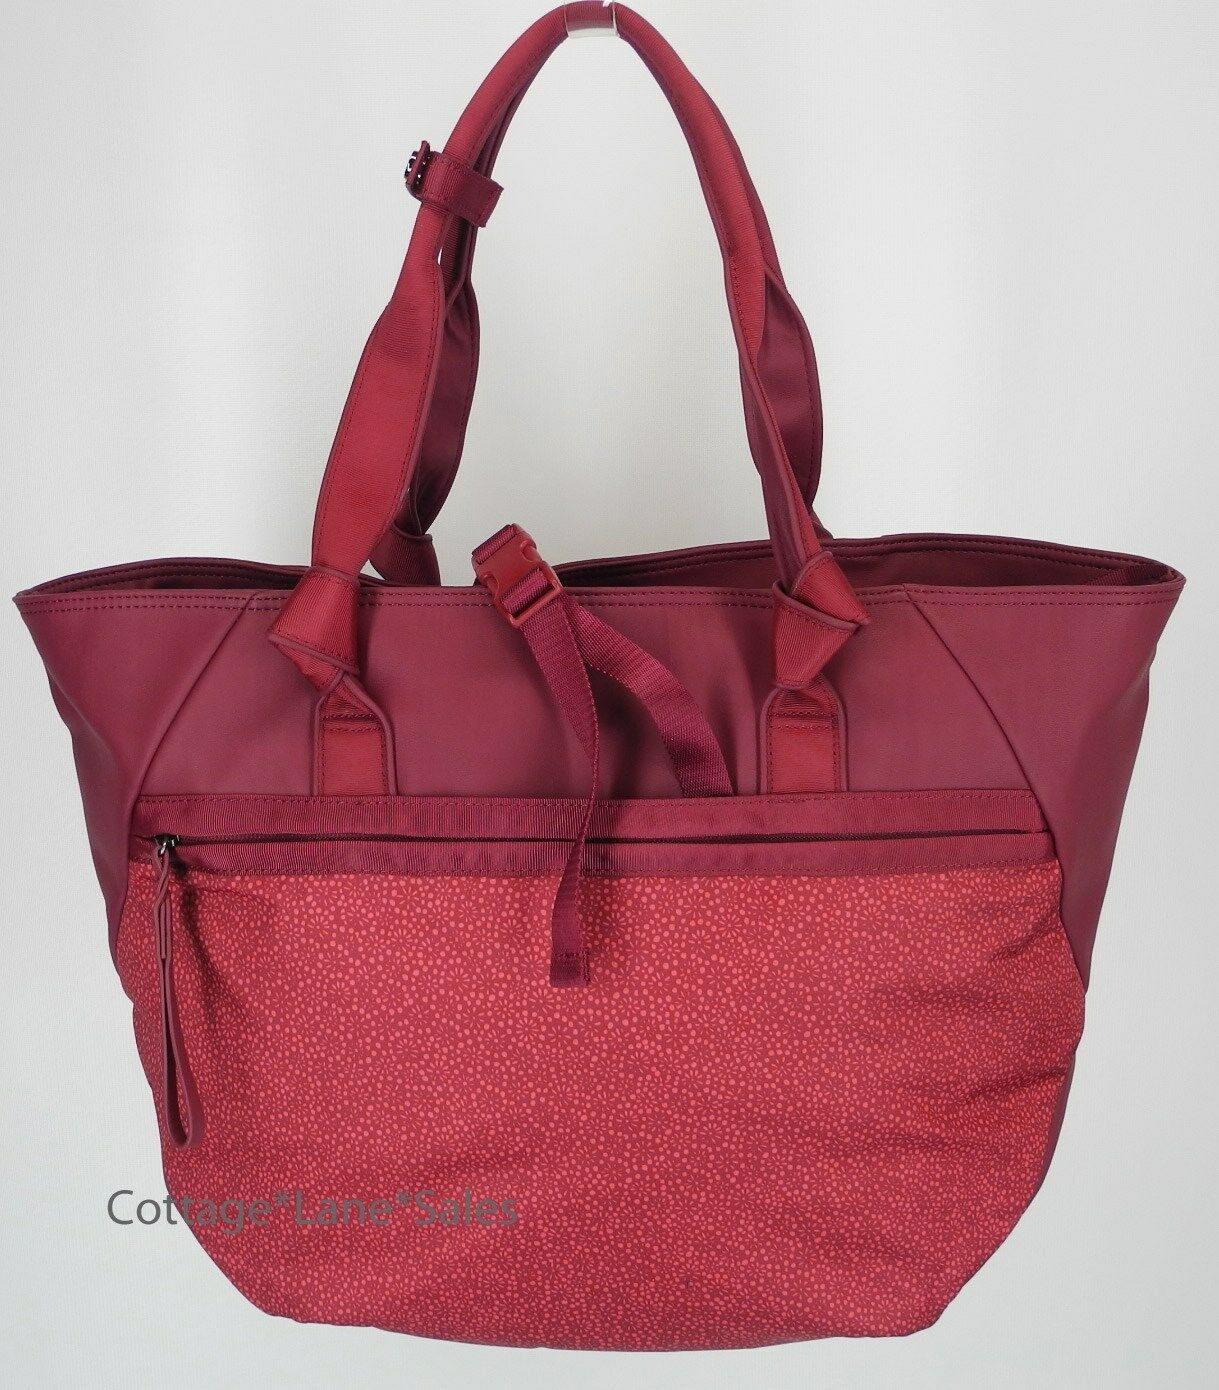 89e8047ea7 Lululemon Everything Bag Rosewood/freckle Flower Fireside Red Rosewood for  sale online | eBay